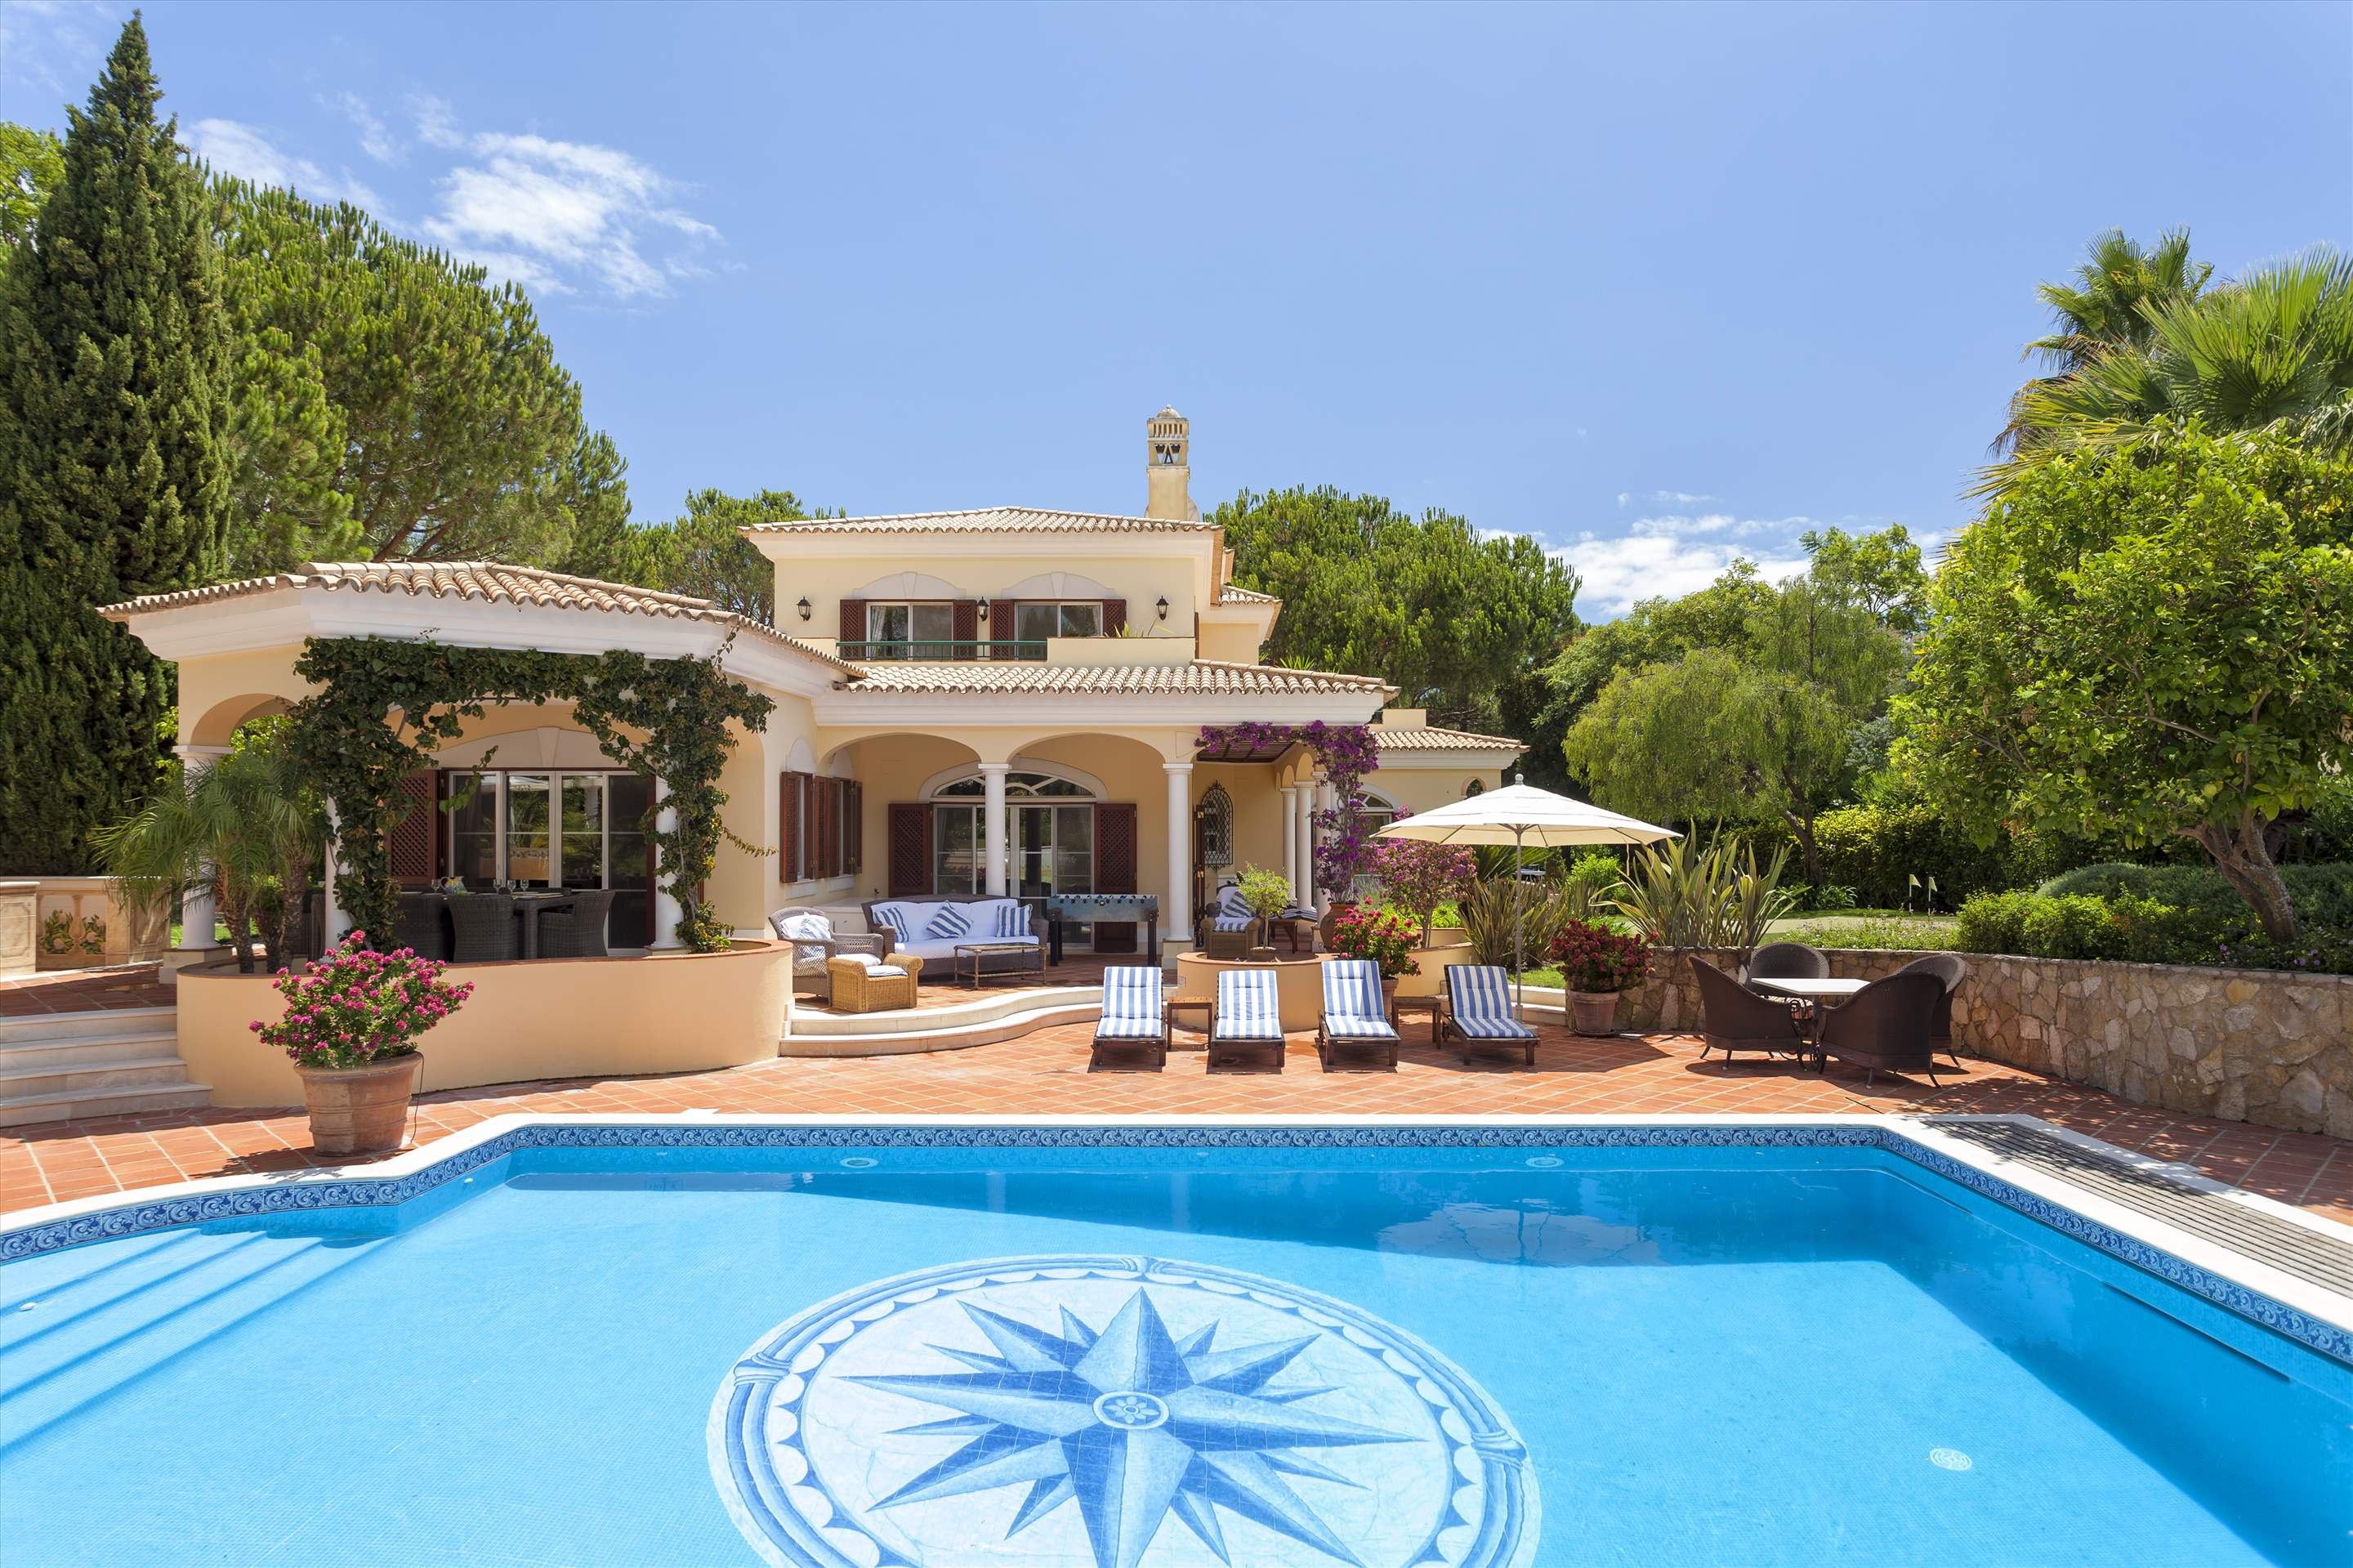 Villa Panache, 4 bedroom villa in Quinta do Lago, Algarve Photo #9